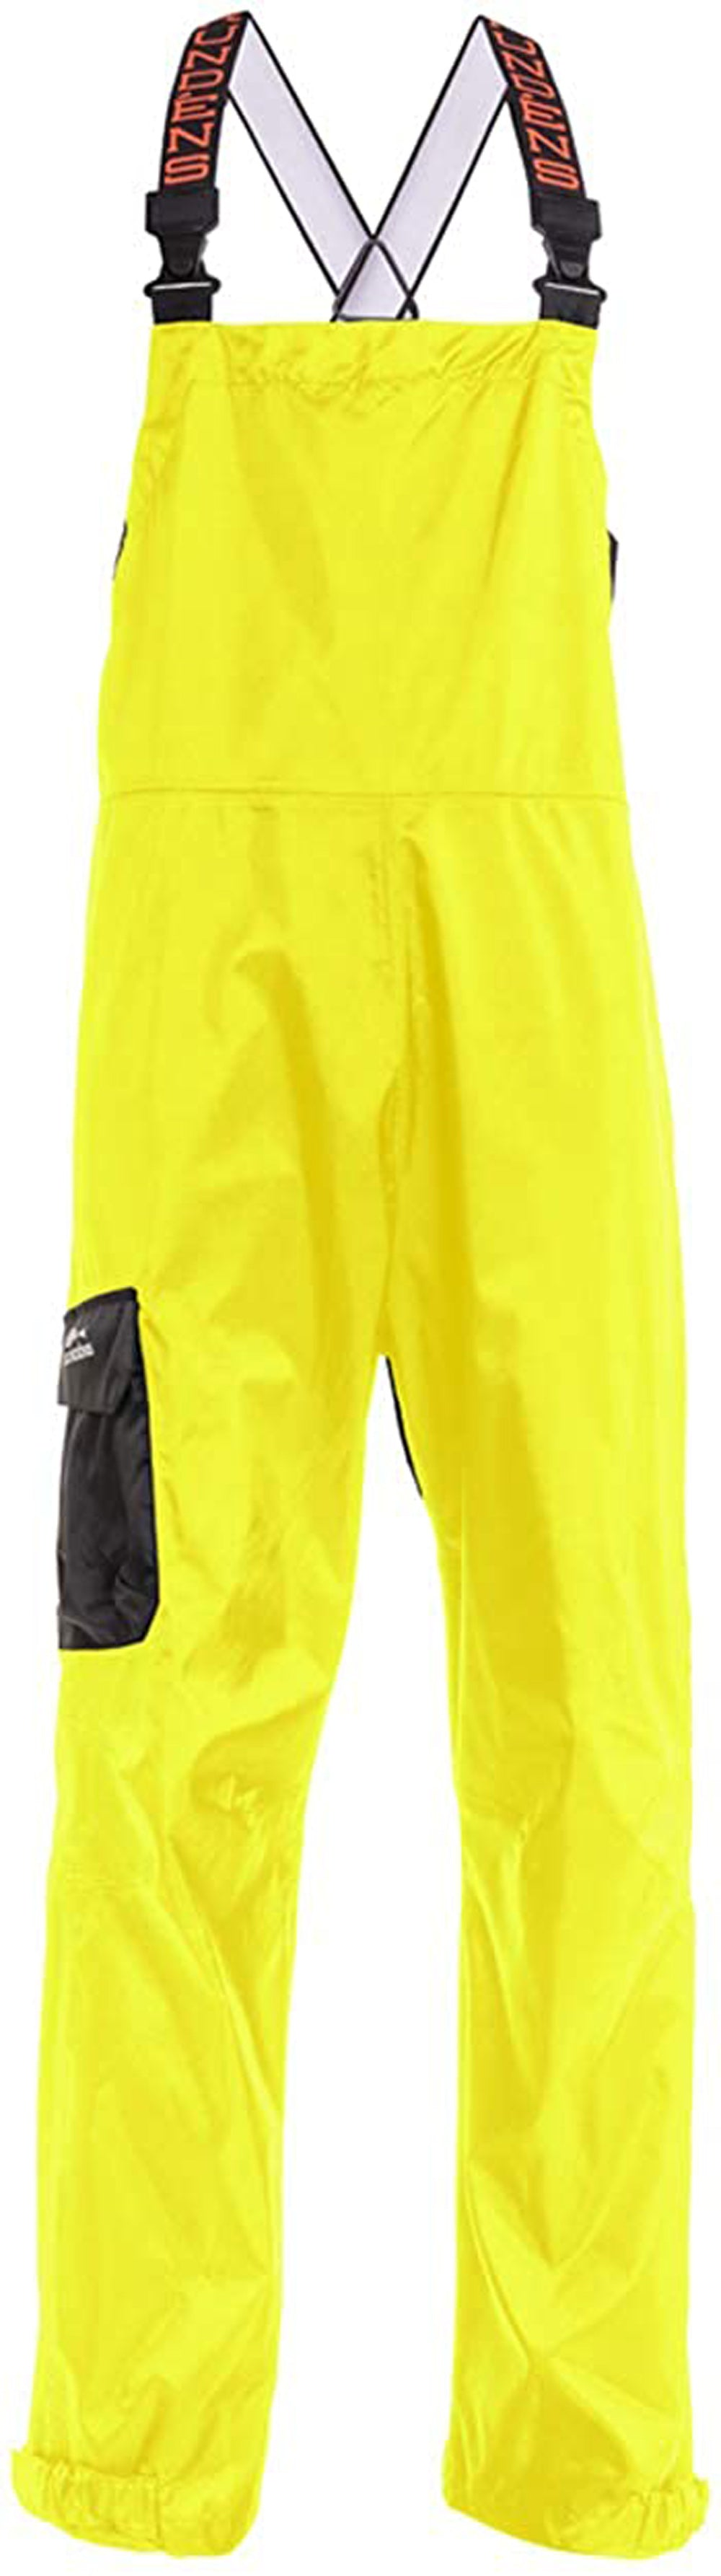 Weather Watch Bib in Hi Vis Yellow color from the front view